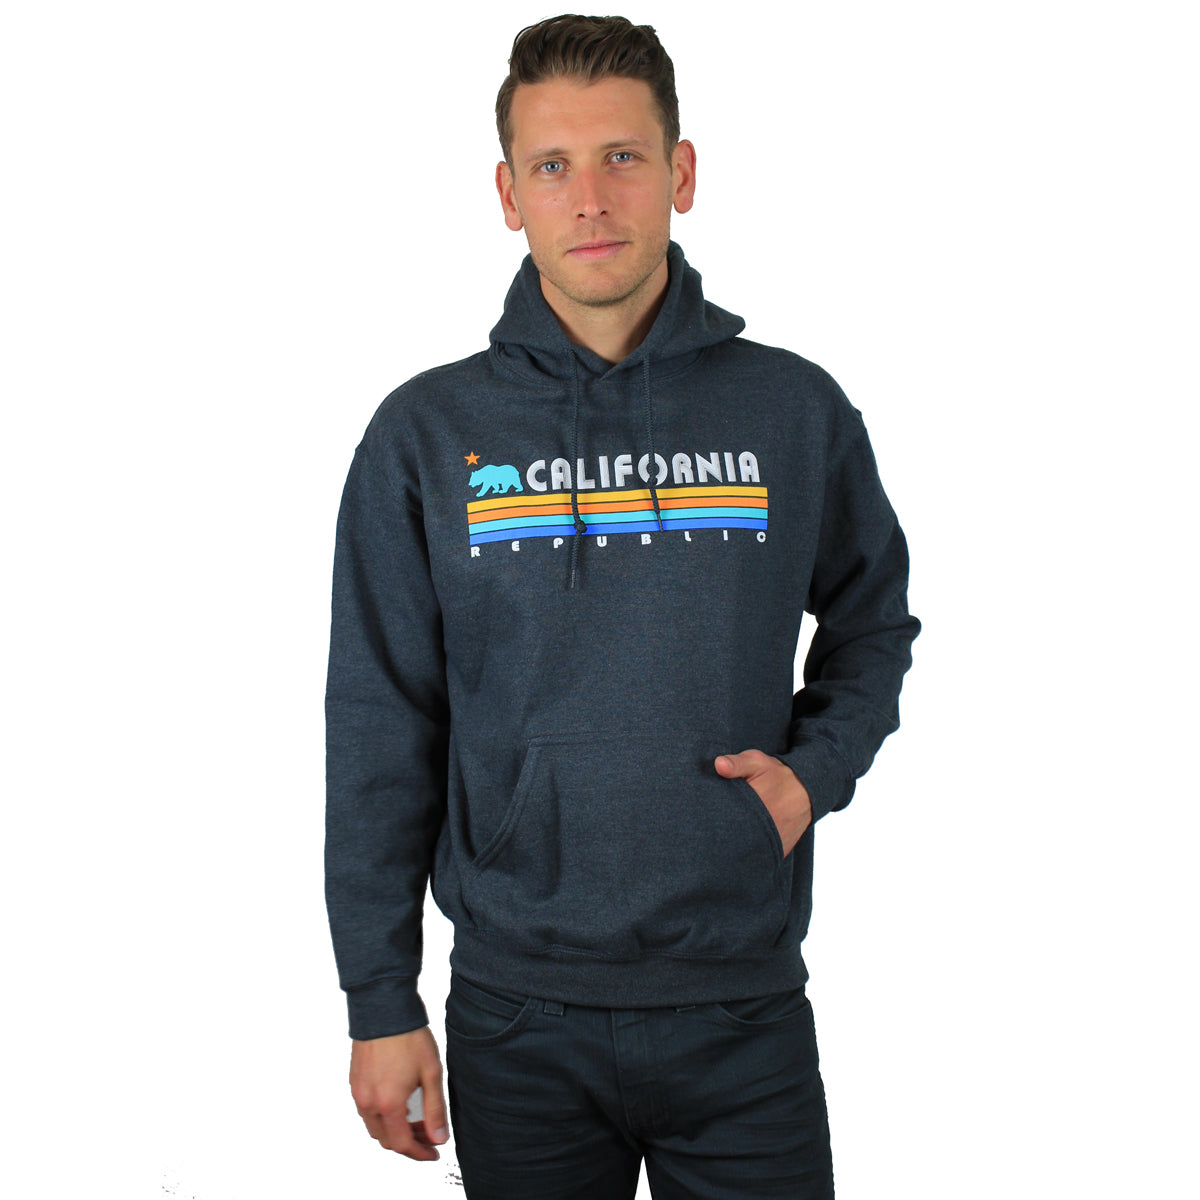 California Republic Vintage Stripe Sweatshirt Hoodie